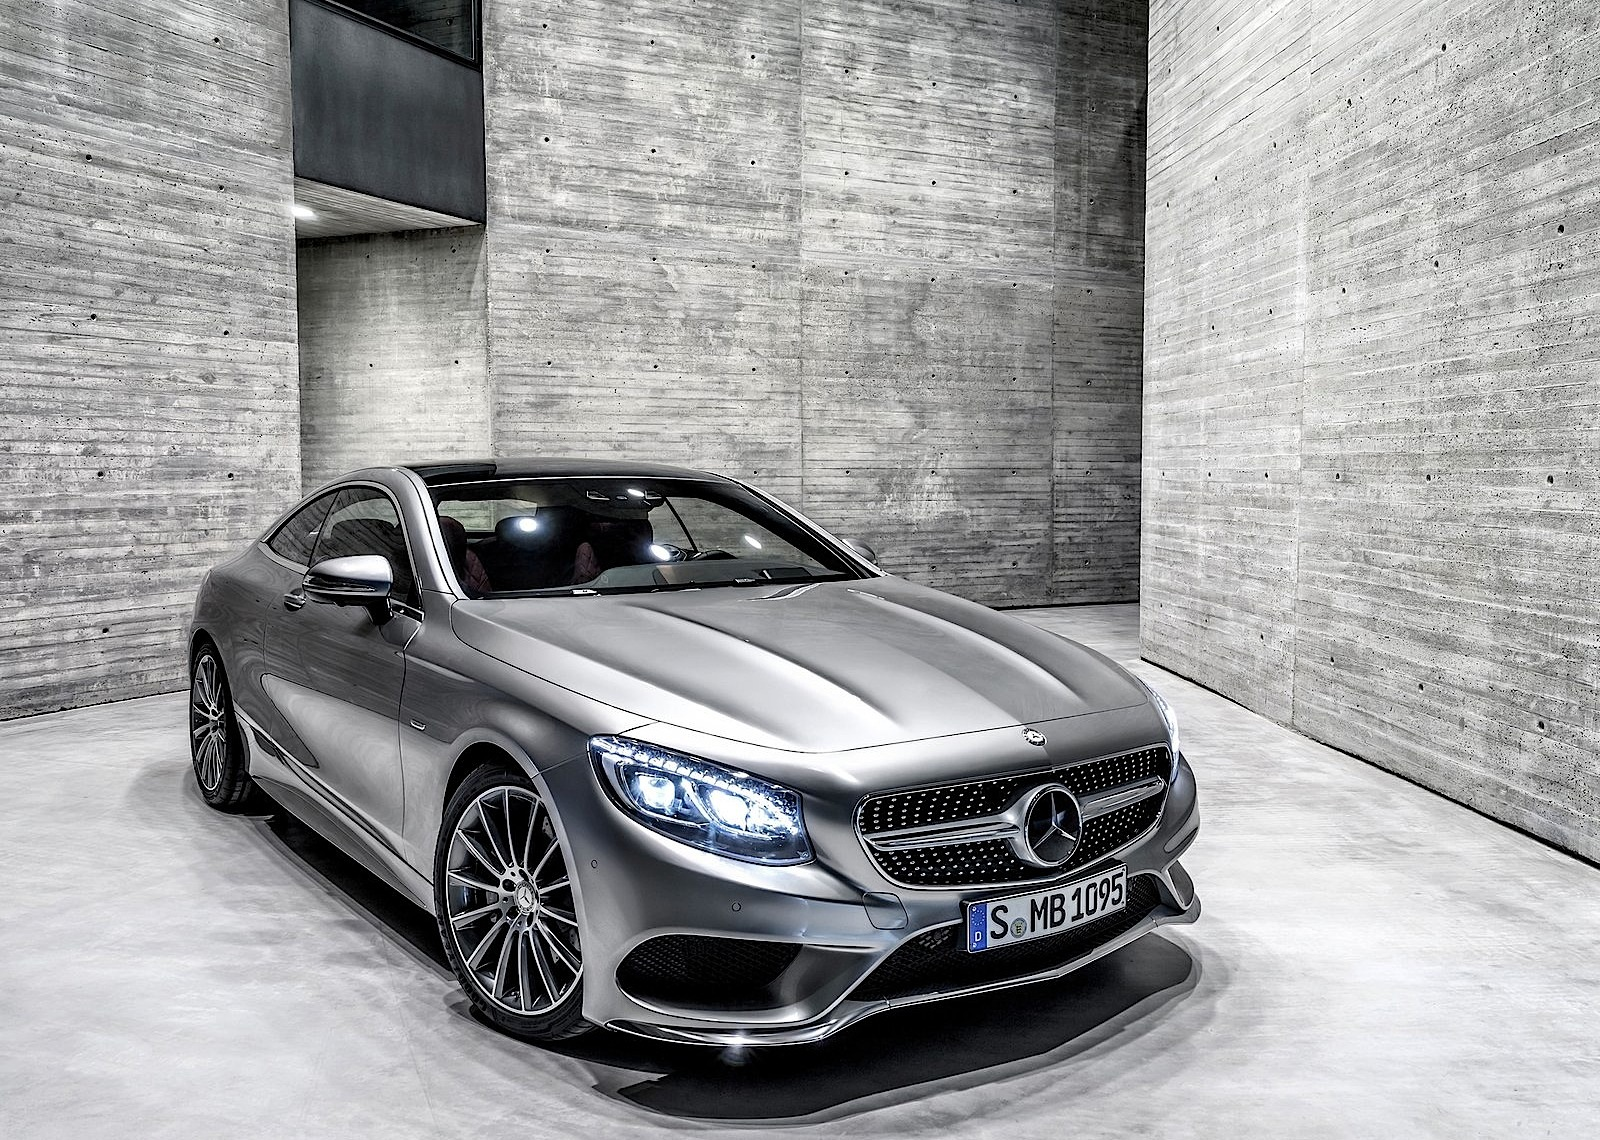 Mercedes benz s 63 amg coupe c217 specs 2014 2015 for Mercedes benz s 63 amg